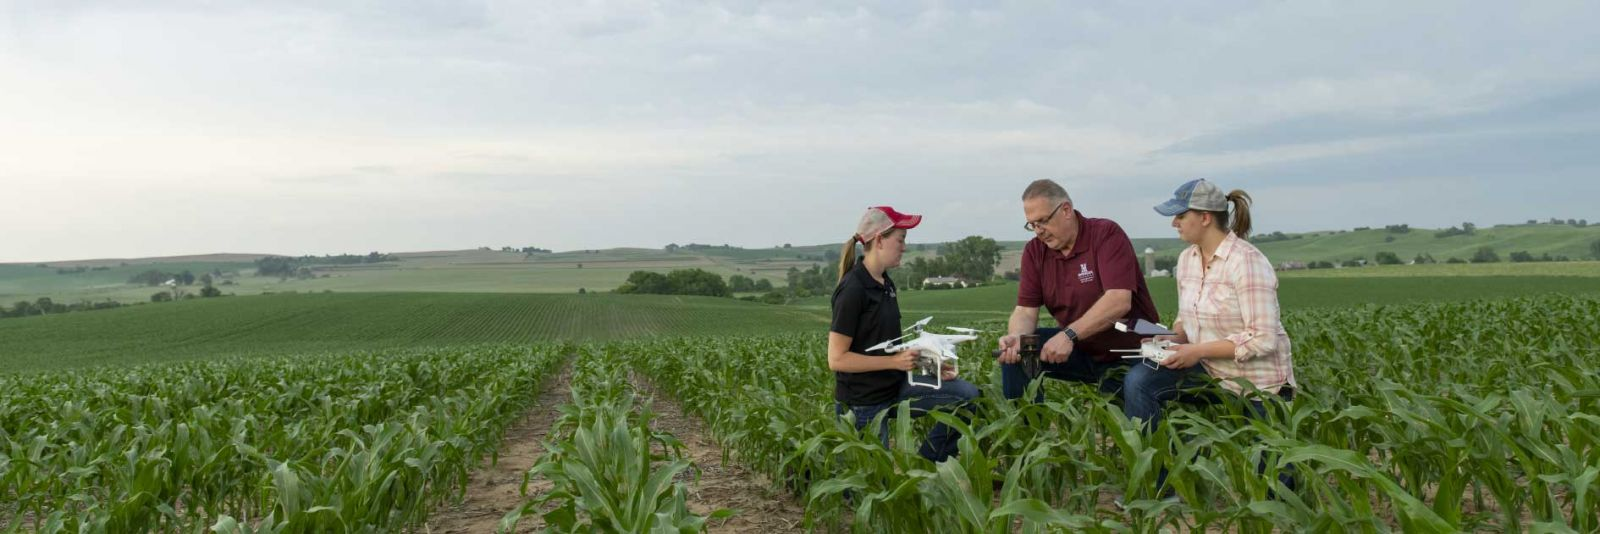 students in field with drone